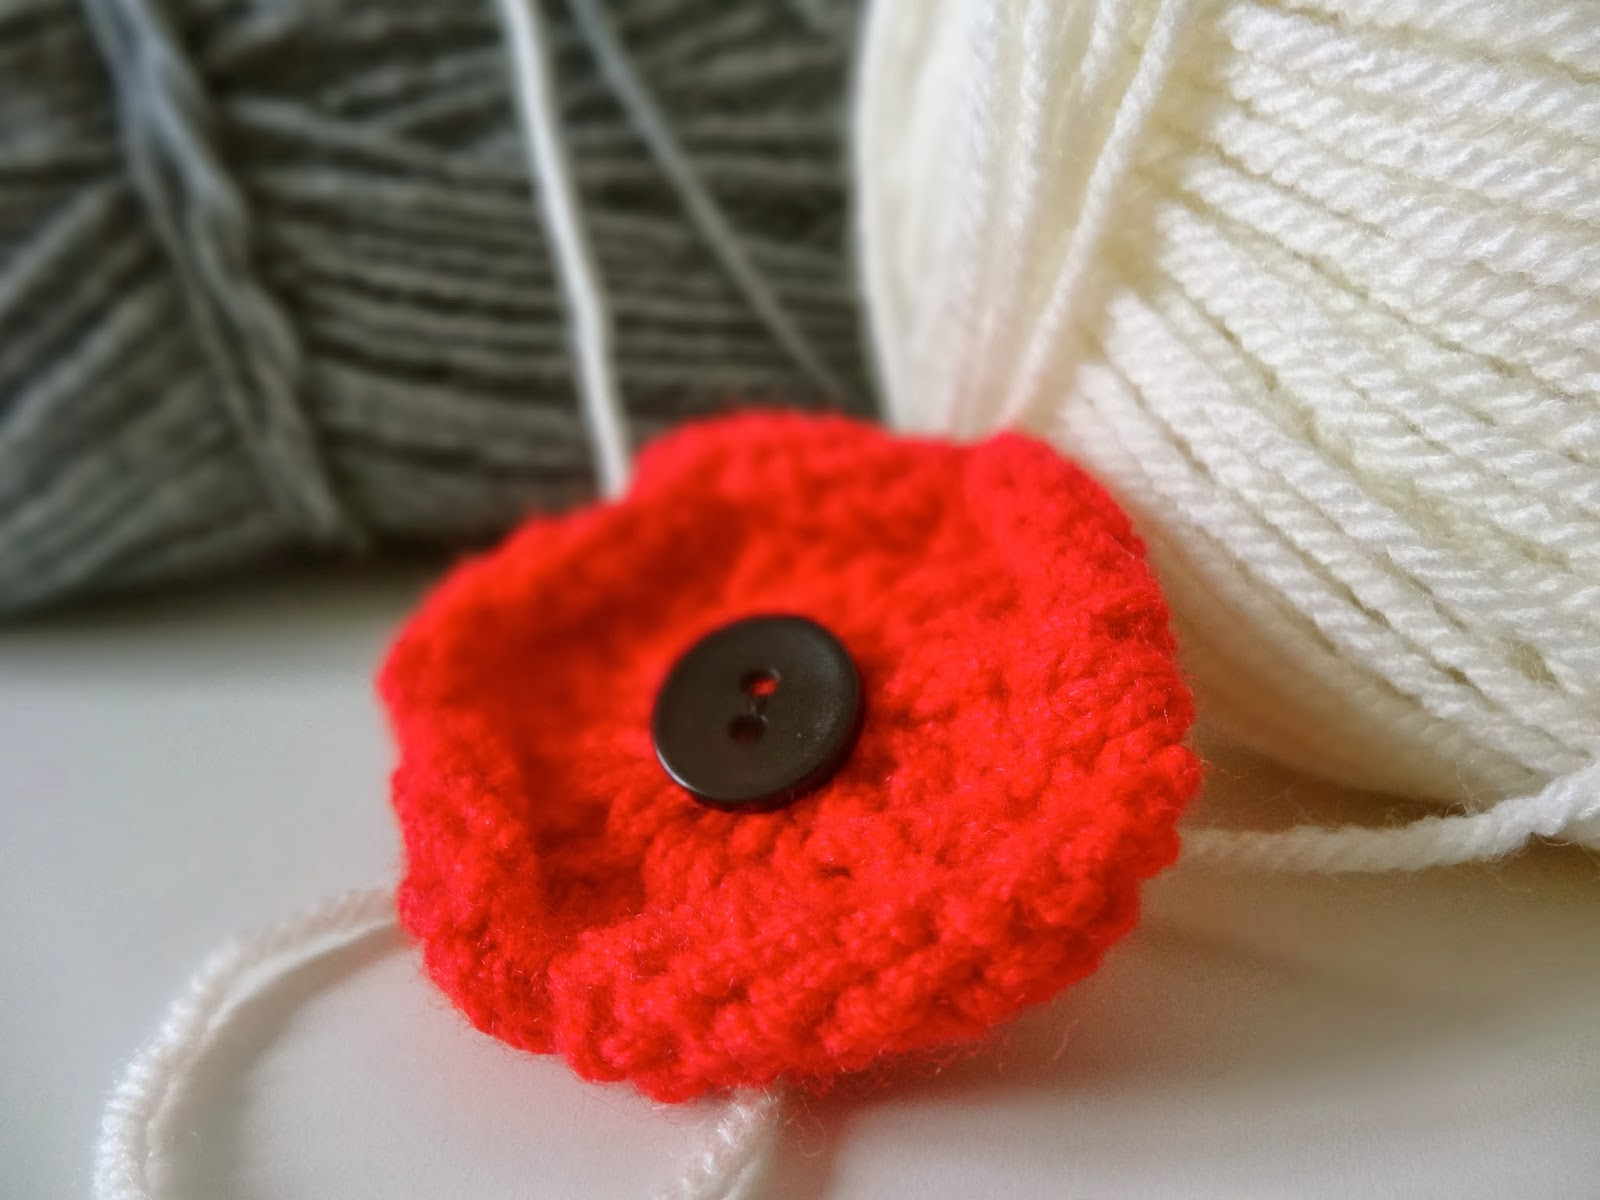 Easy Knitting Patterns For Baby Booties : Trends With Benefits: DIY Knitted Poppy